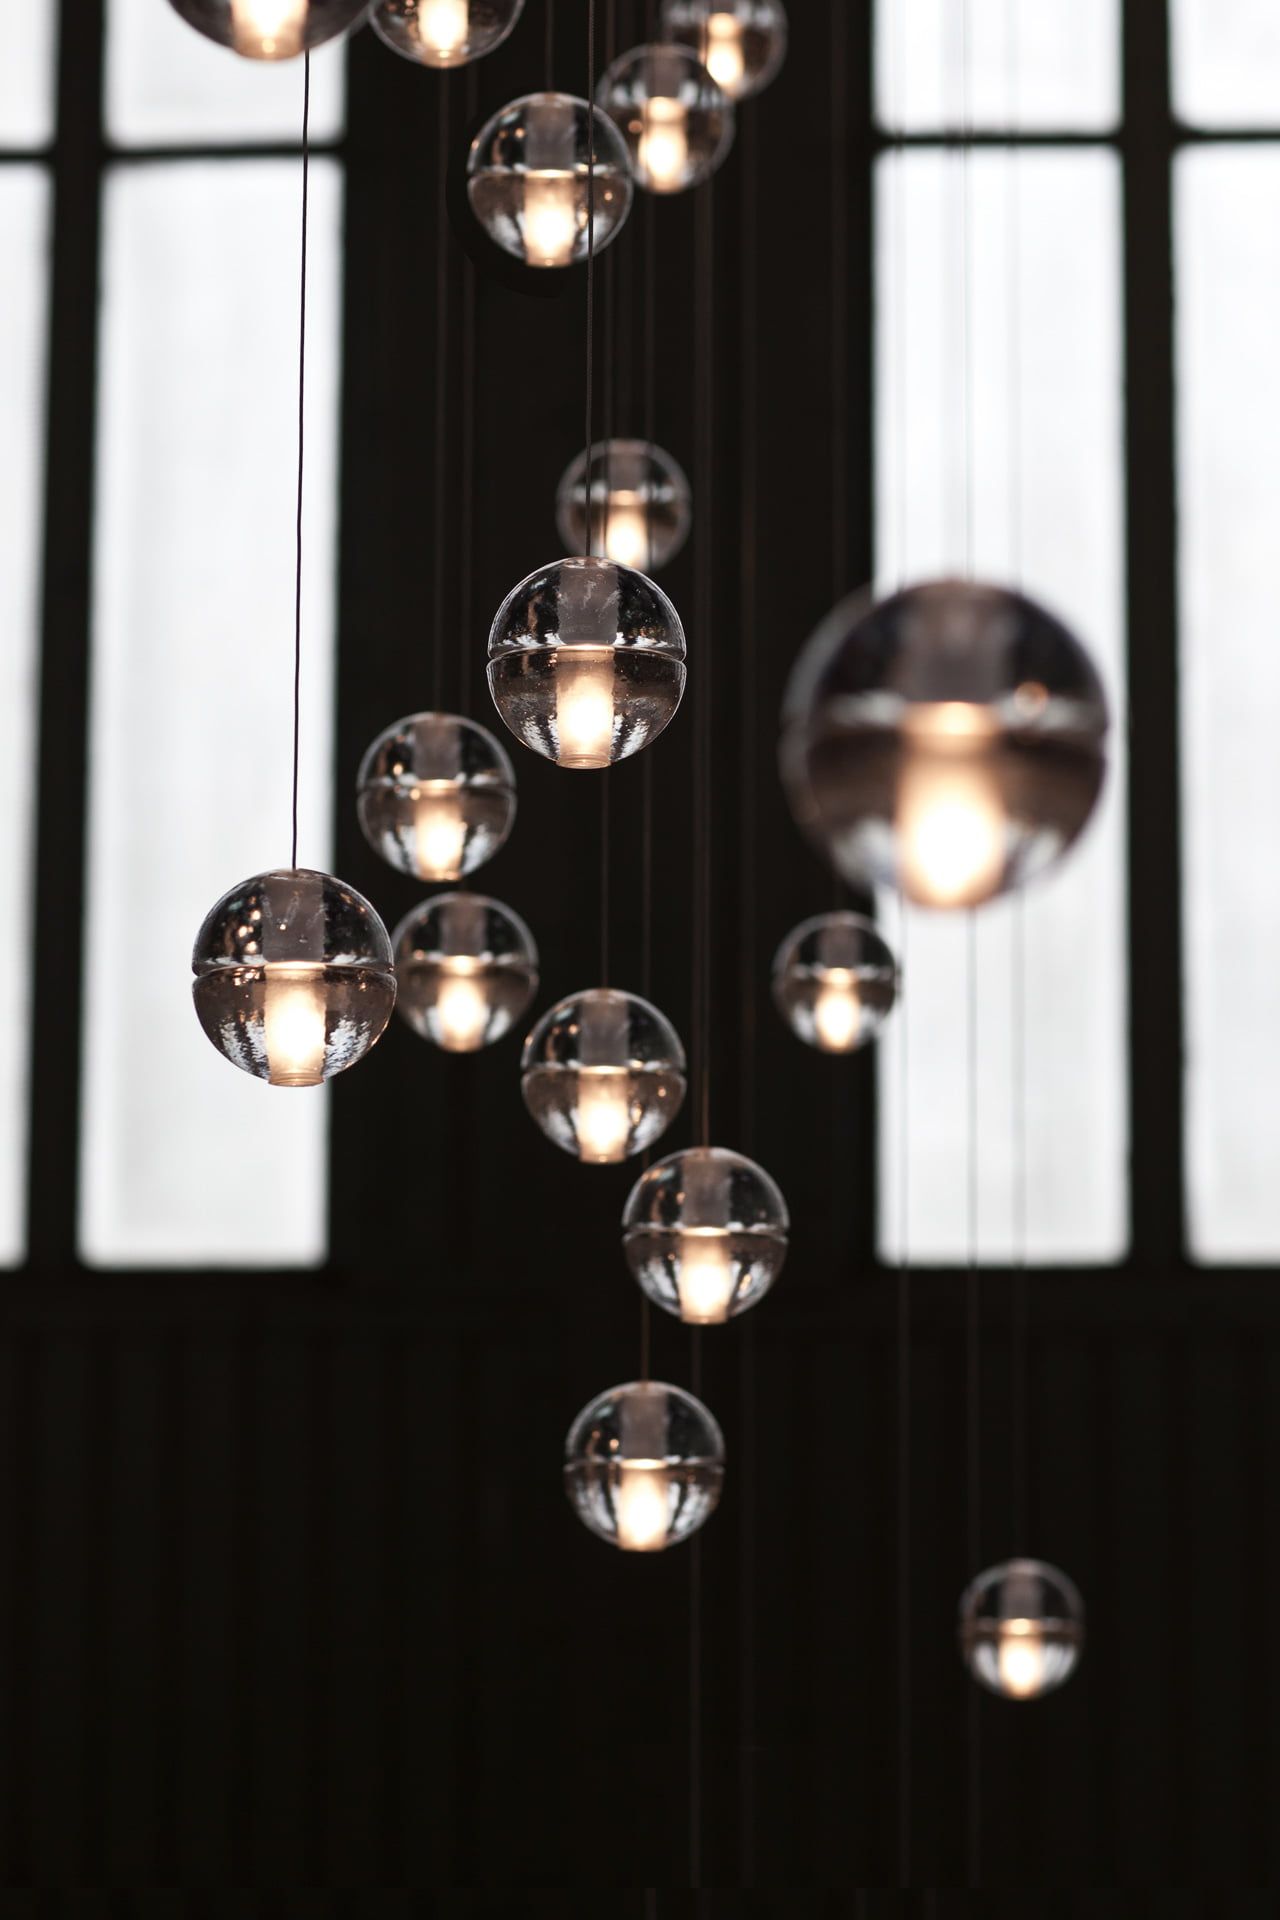 Top Omer Arbel Inside We Use Cookies To Ensure That We Give You The Best Experience On Our Website If Continue This Site Will Assume Are Happy With It Everything Is Illuminated Multidisciplinary Fvf Event Featuring